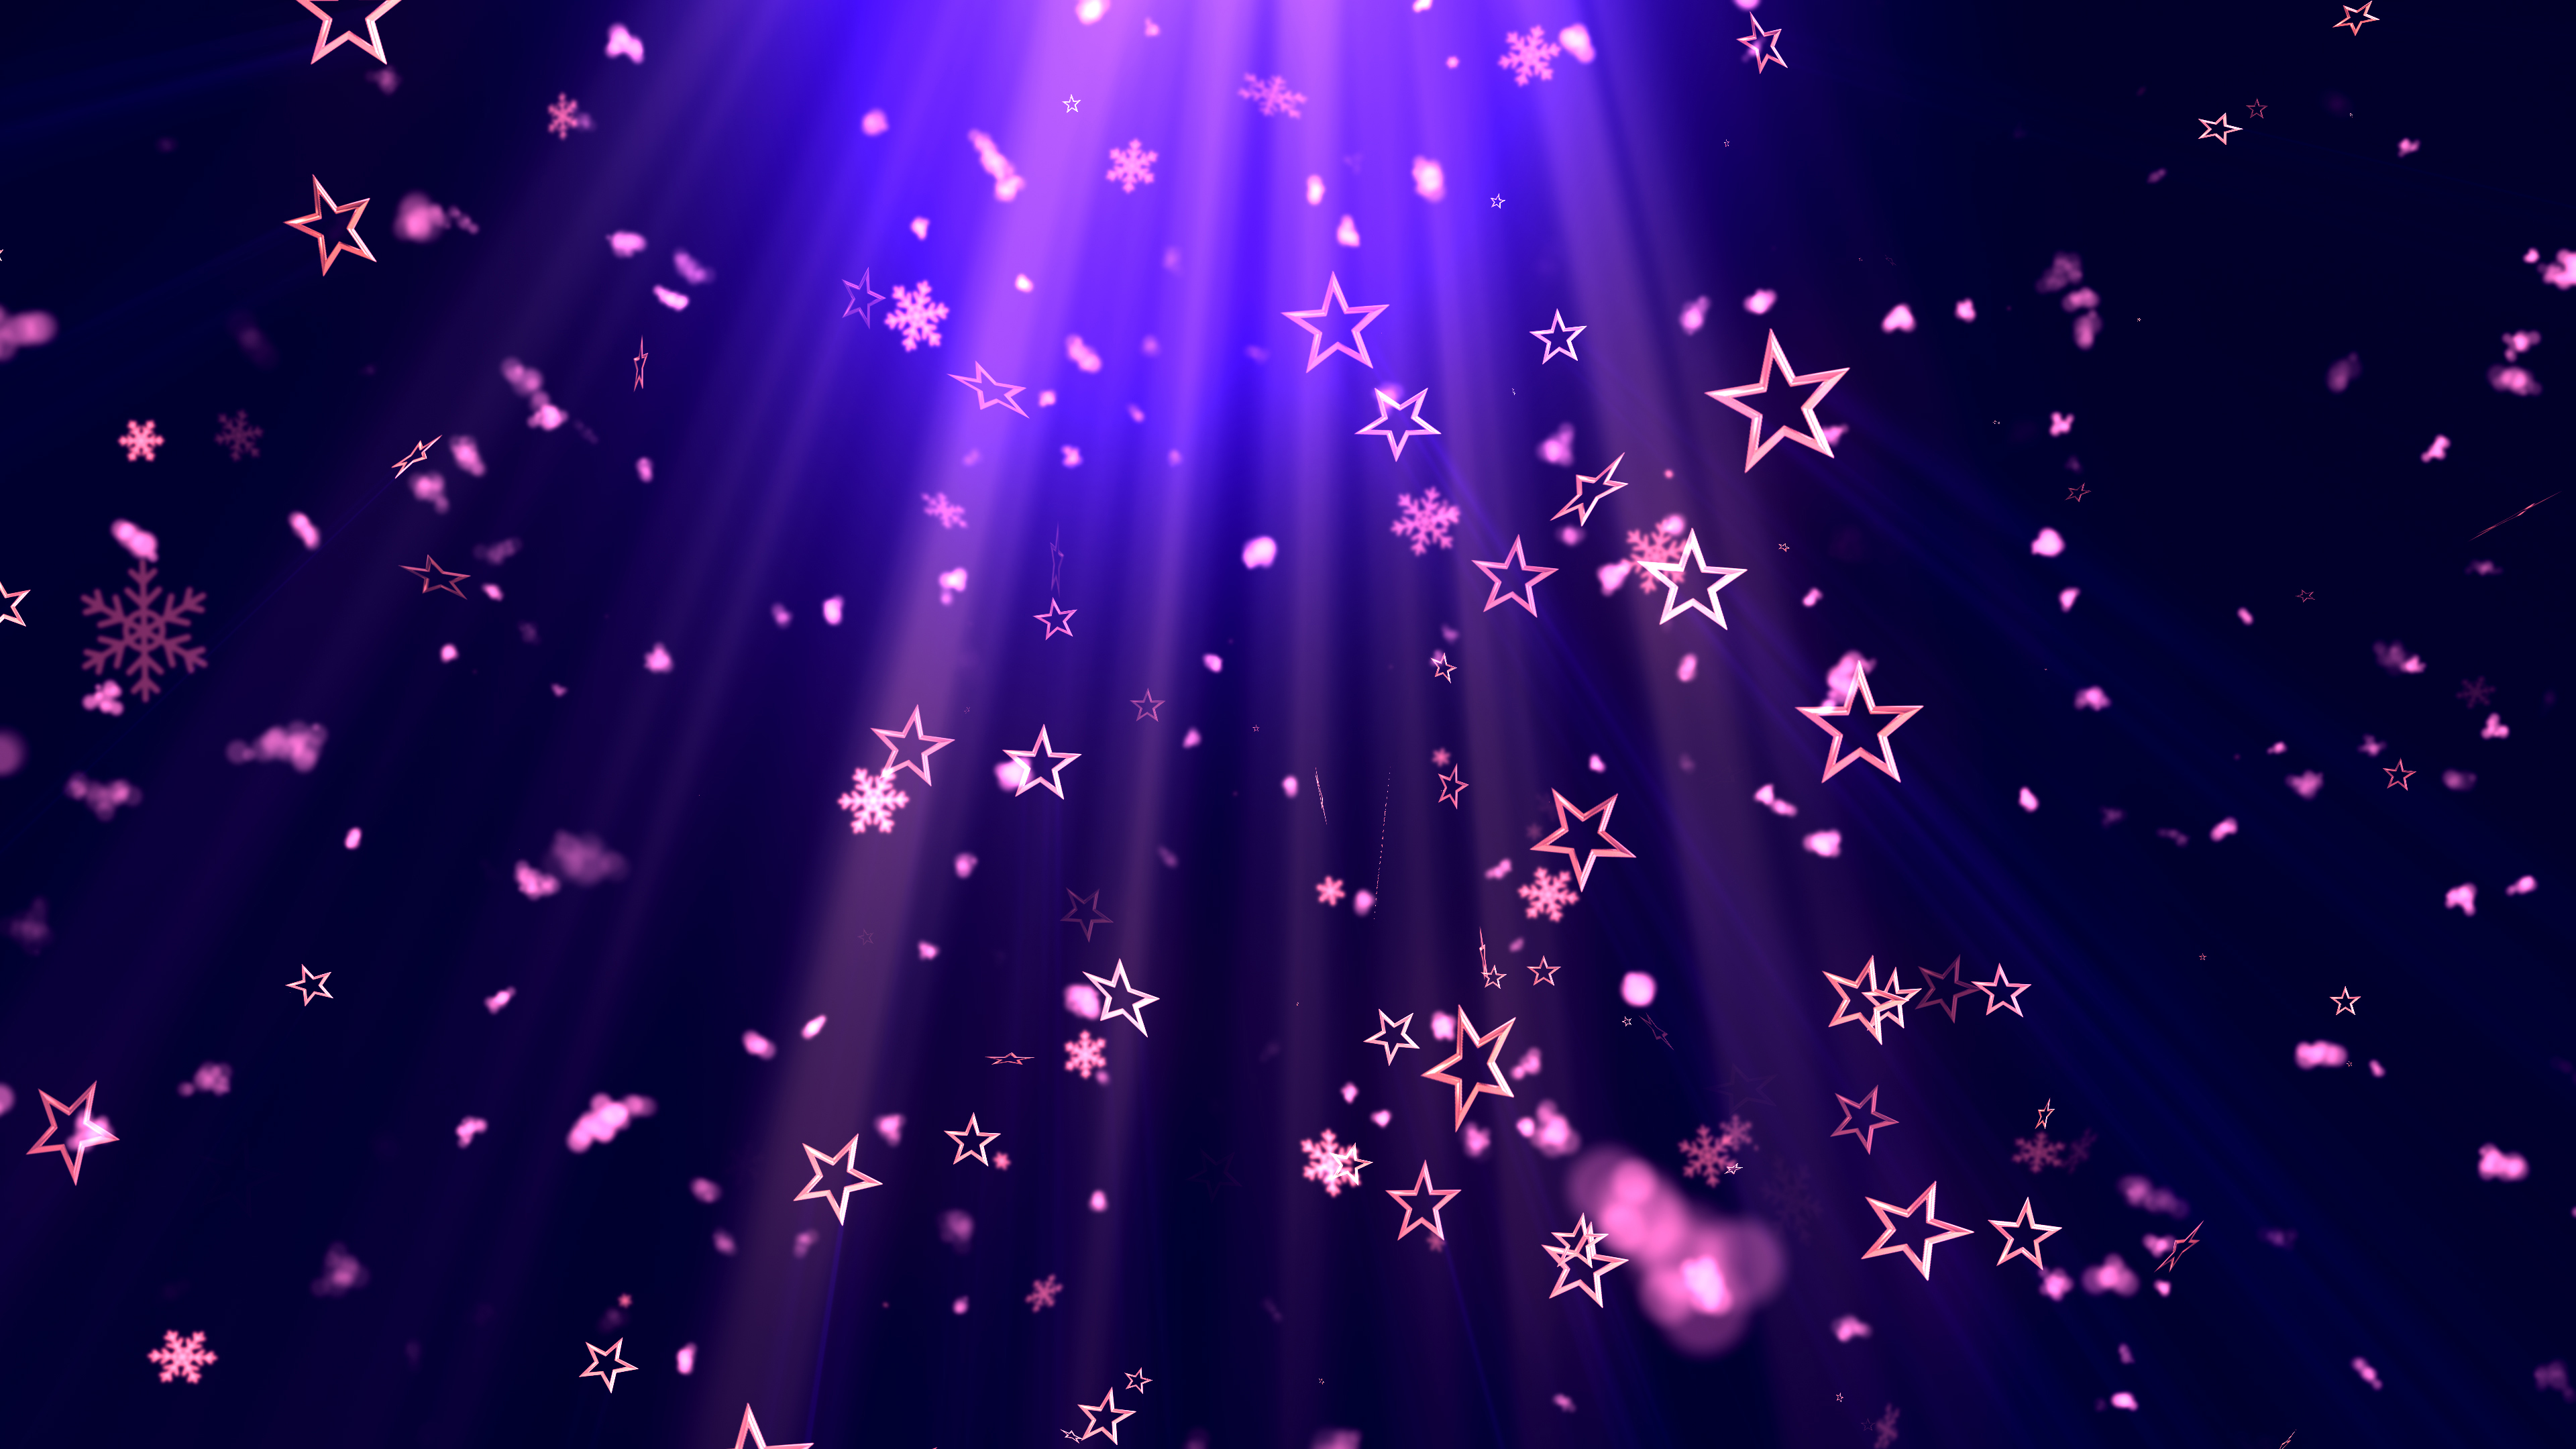 abstract star falling 1575661266 - Abstract Star Falling -